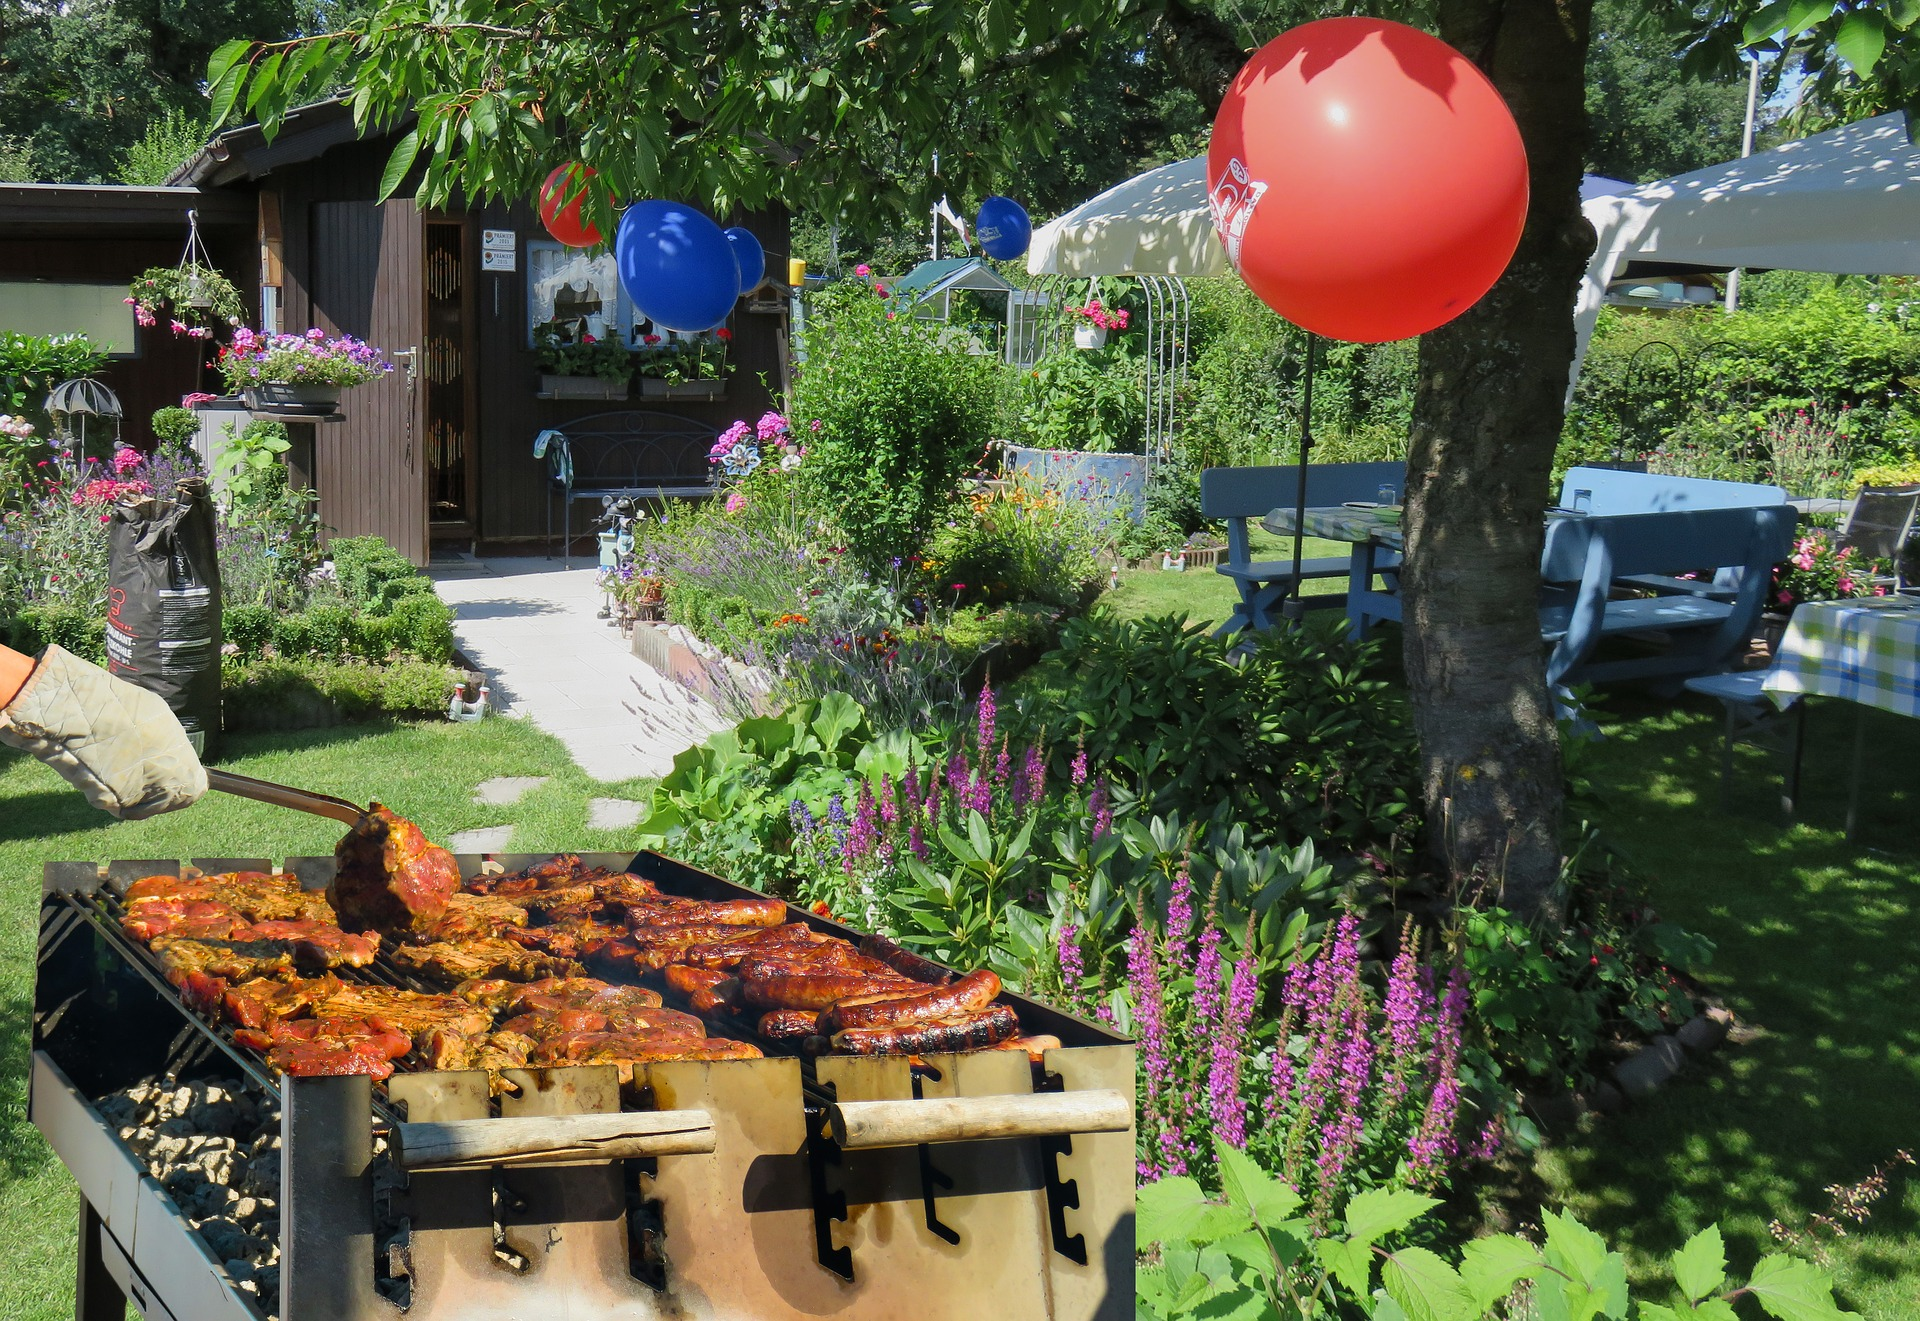 Shoot for the Stars Backyard BBQ Party via @mermaidsandmojitos